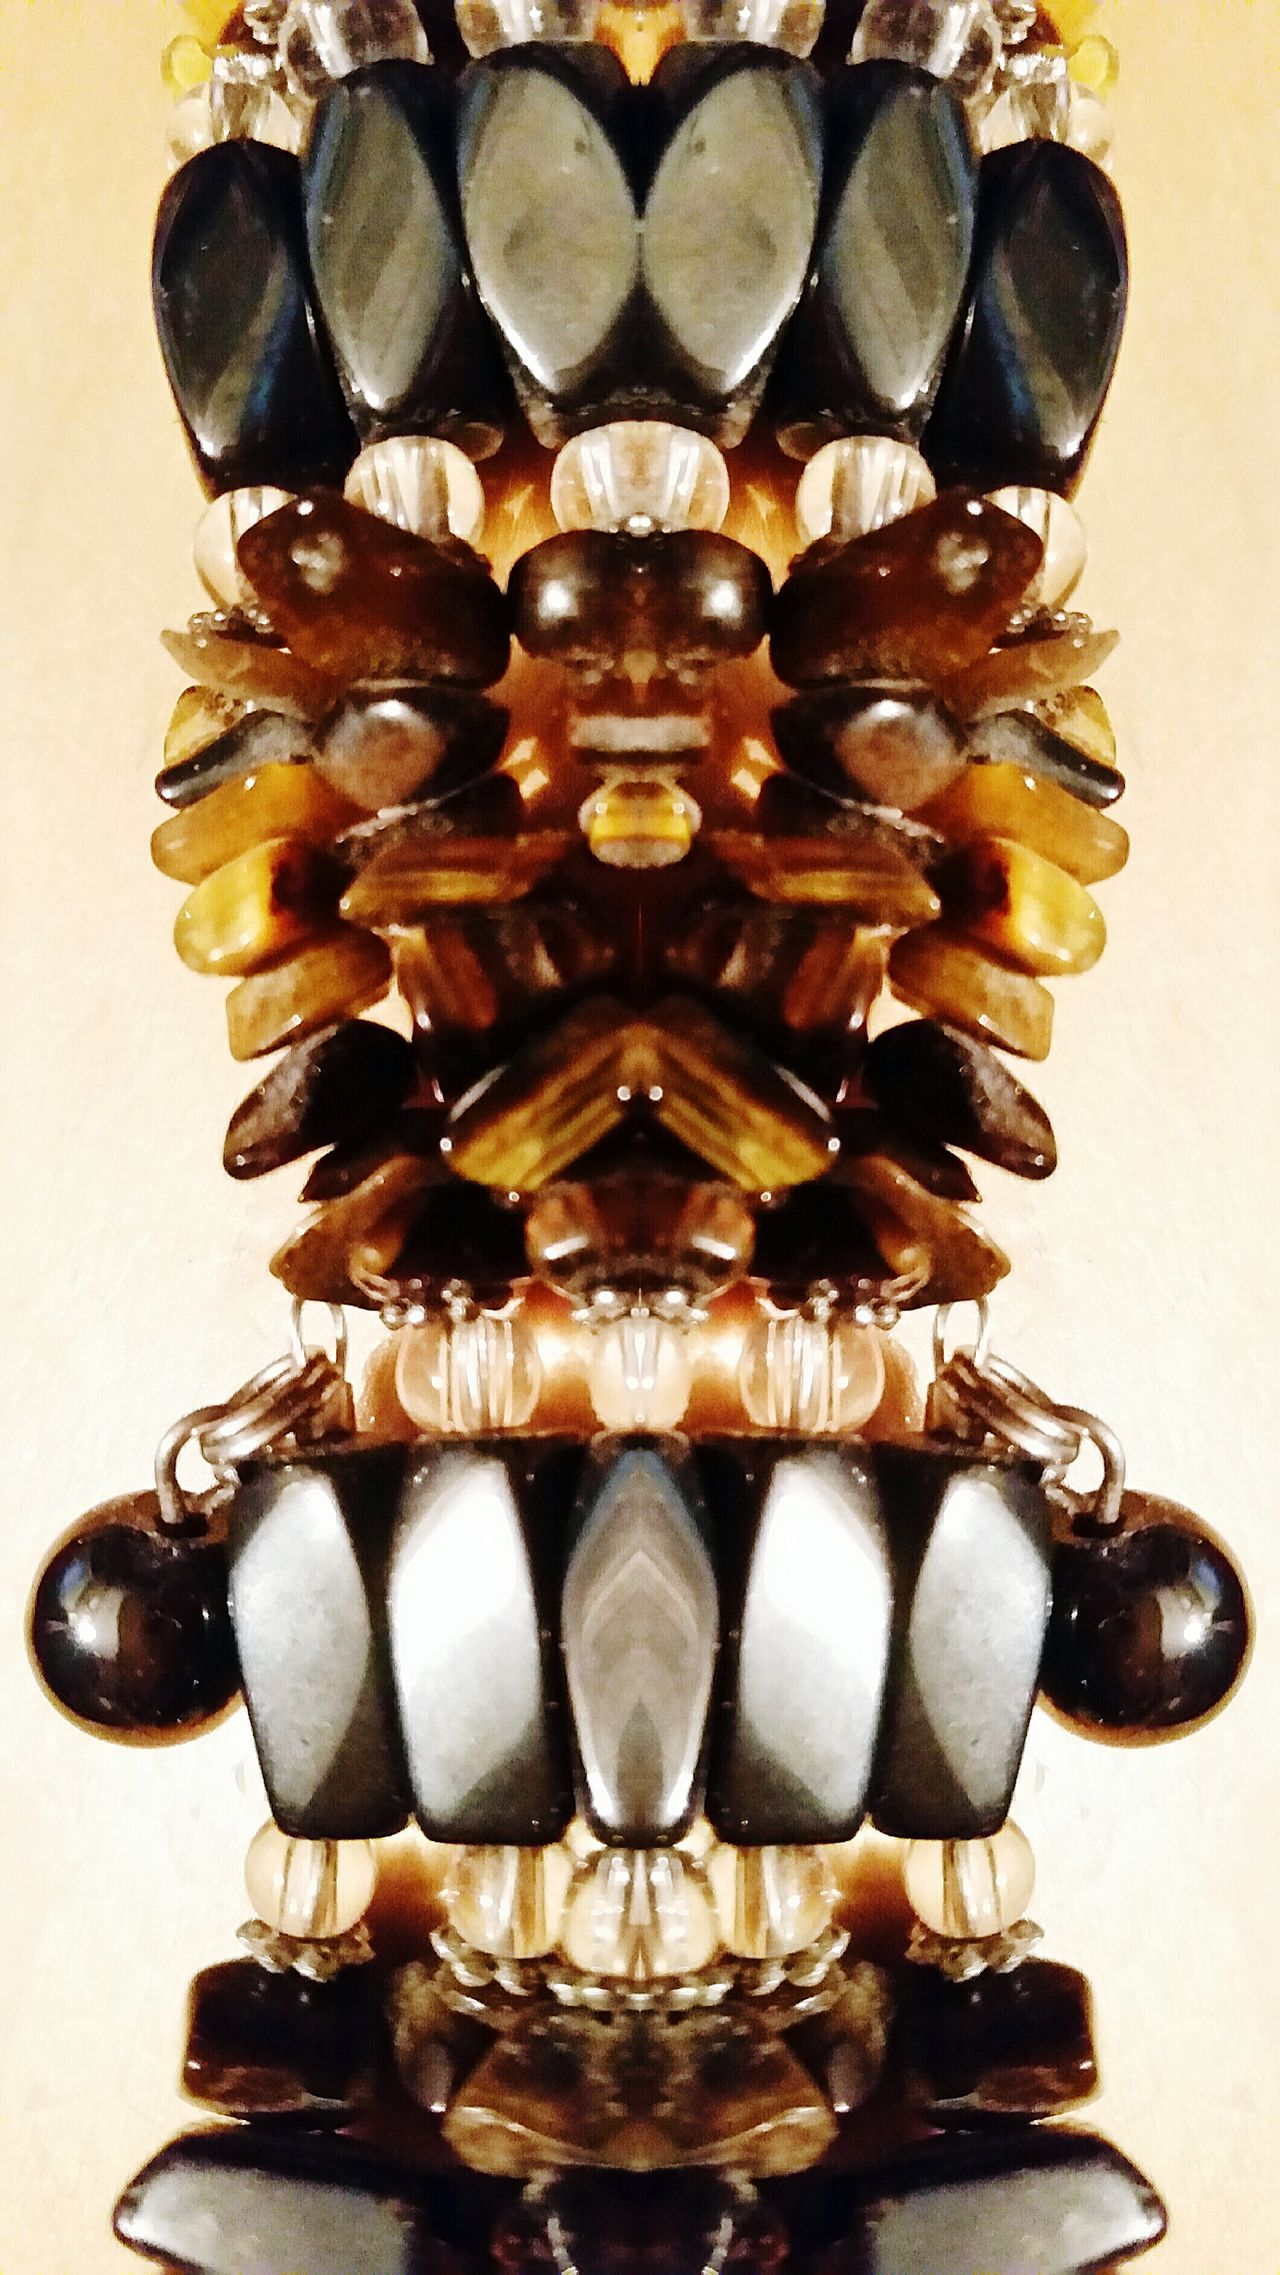 Beautiful Semipreciousstones Strange Shapes Tigerseye and others. Getting Creative EyeEm Gallery Bracelet Weird Stuff